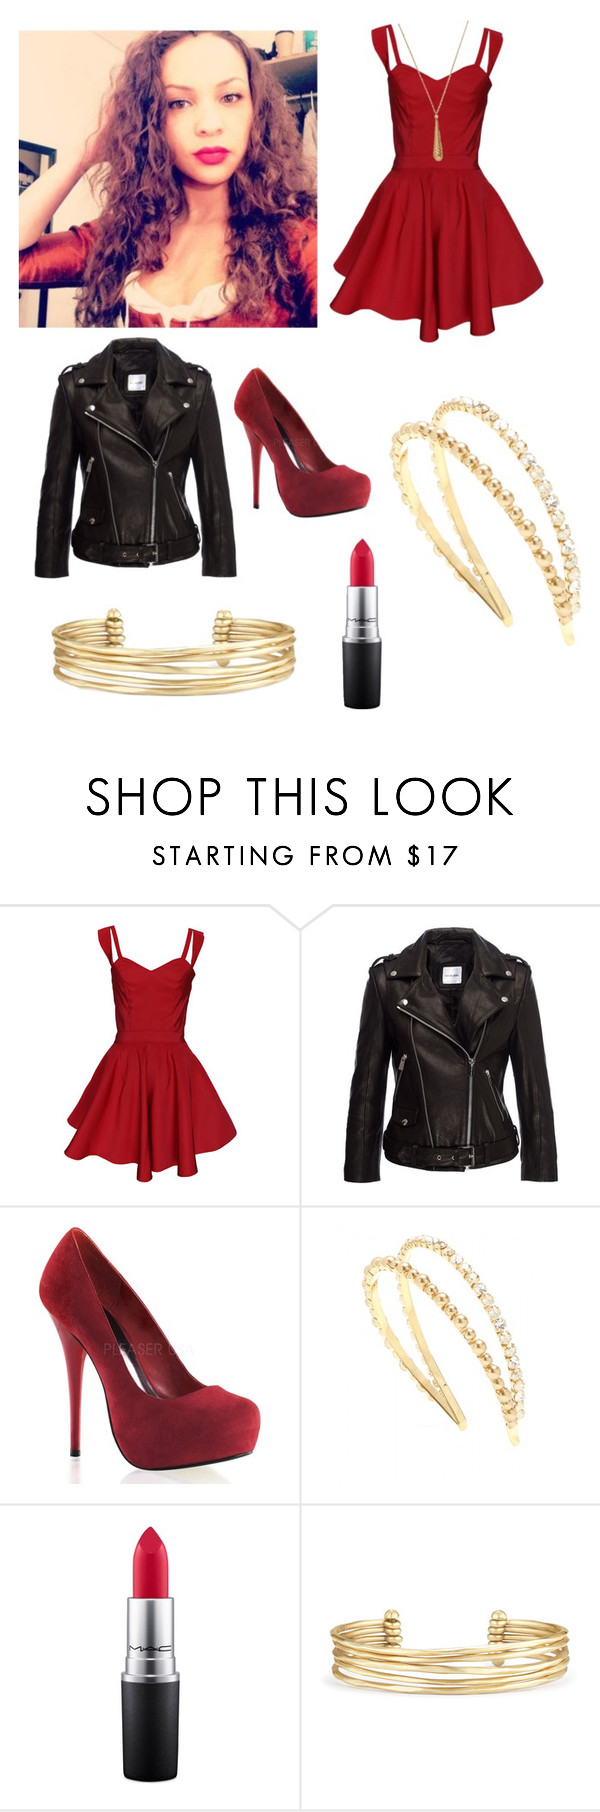 """That's When Miss Maria Reynolds Walked Into My Life"" by hnhdeo ❤ liked on Polyvore featuring Funlayo Deri, Anine Bing, Miu Miu, MAC Cosmetics, Stella & Dot and Gucci"